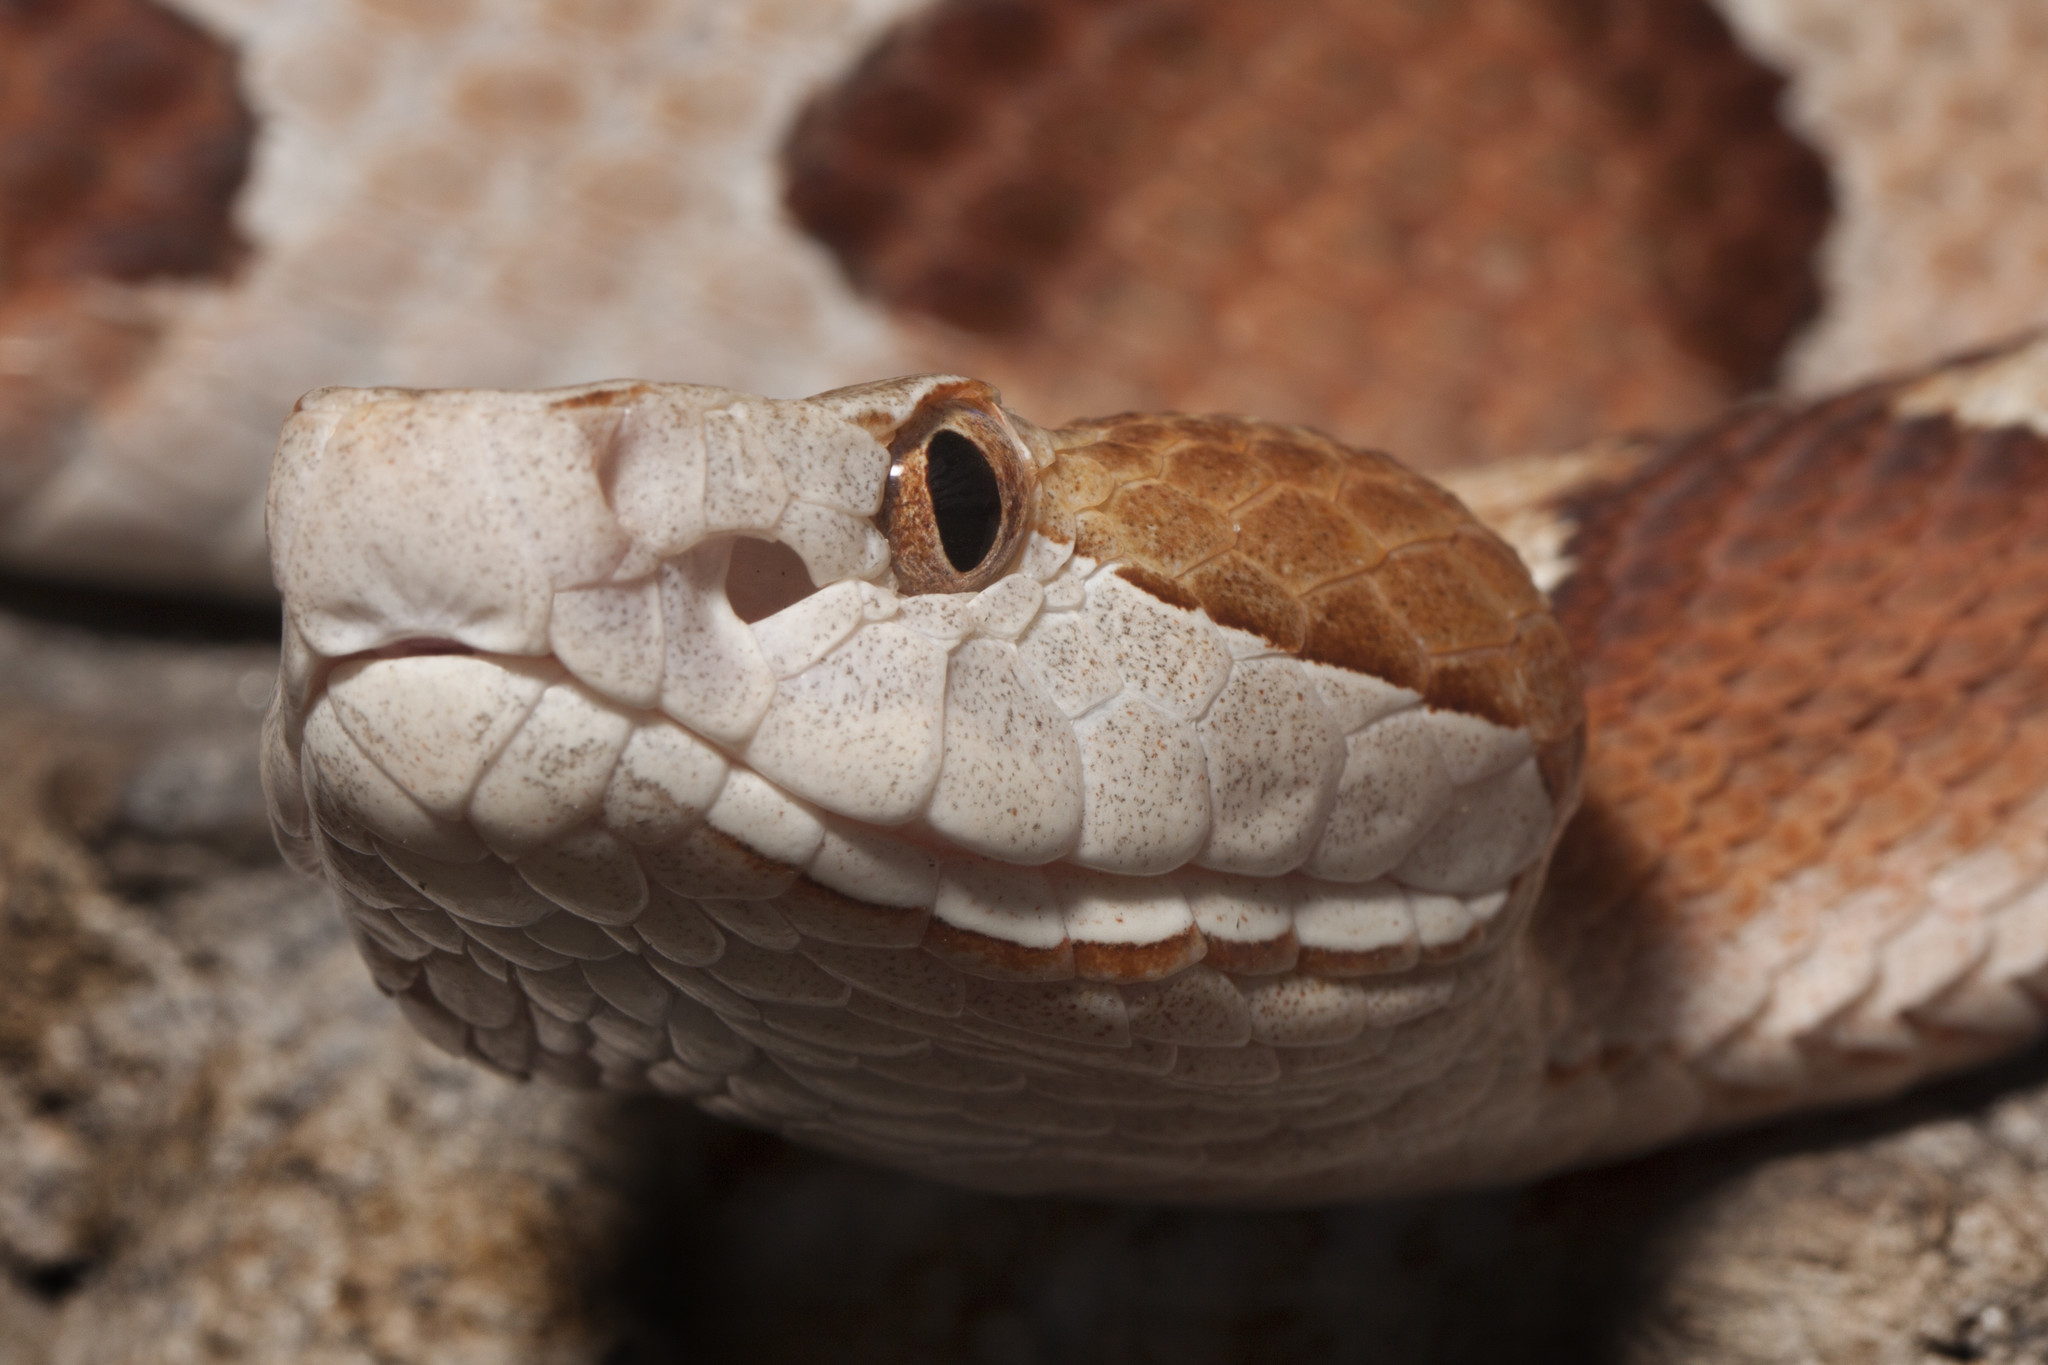 Mississippi hunter attacked from above by venomous snake hidden in tree